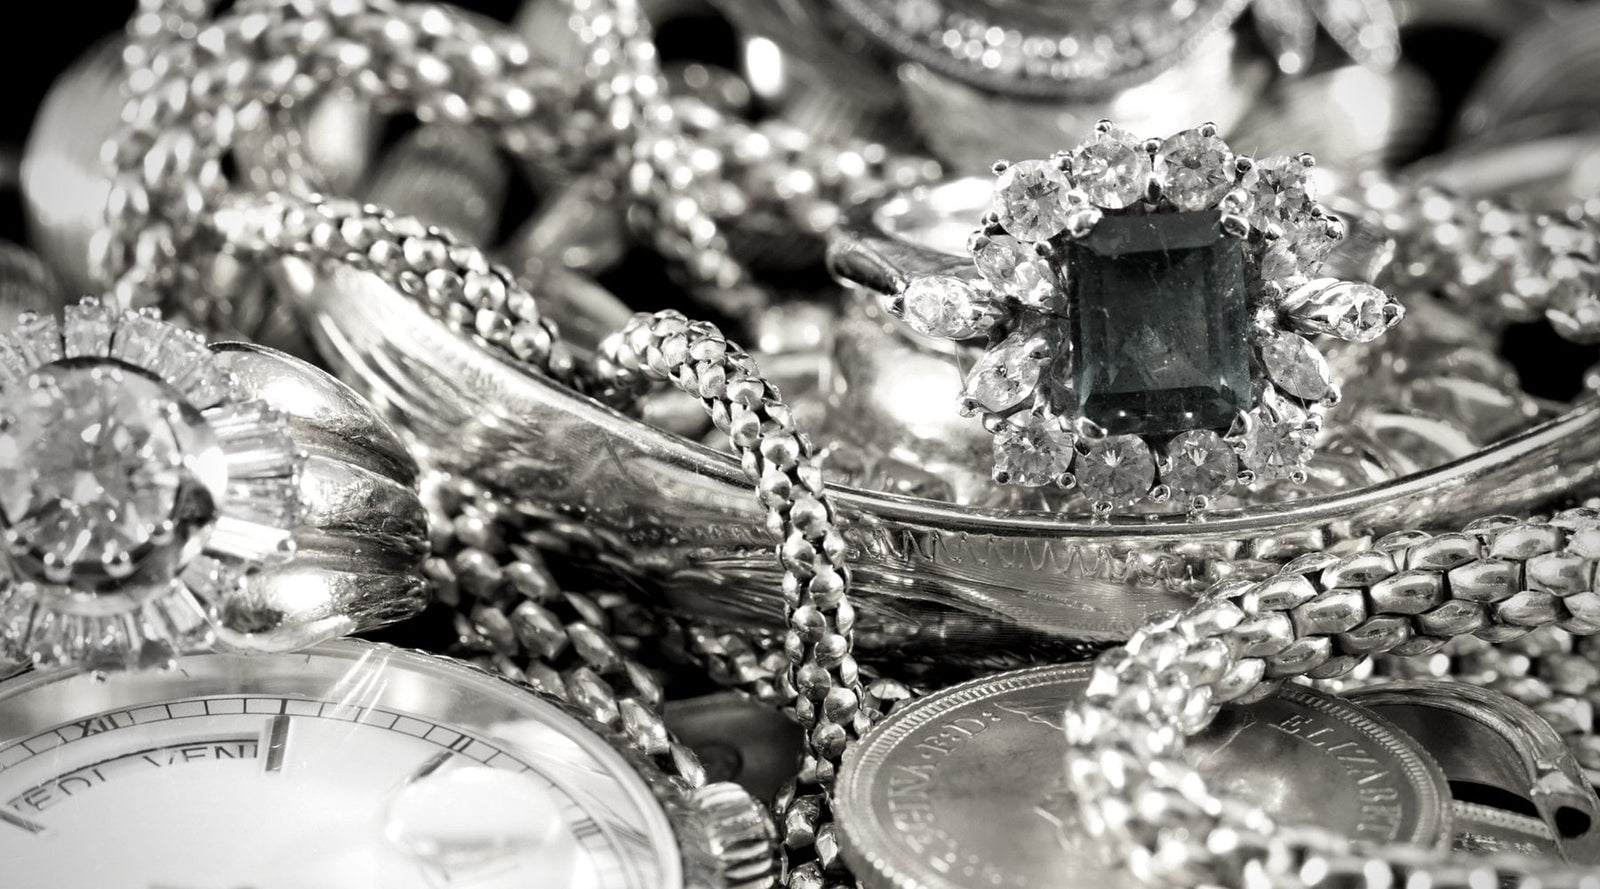 White Gold vs Sterling Silver: Which Is Better?